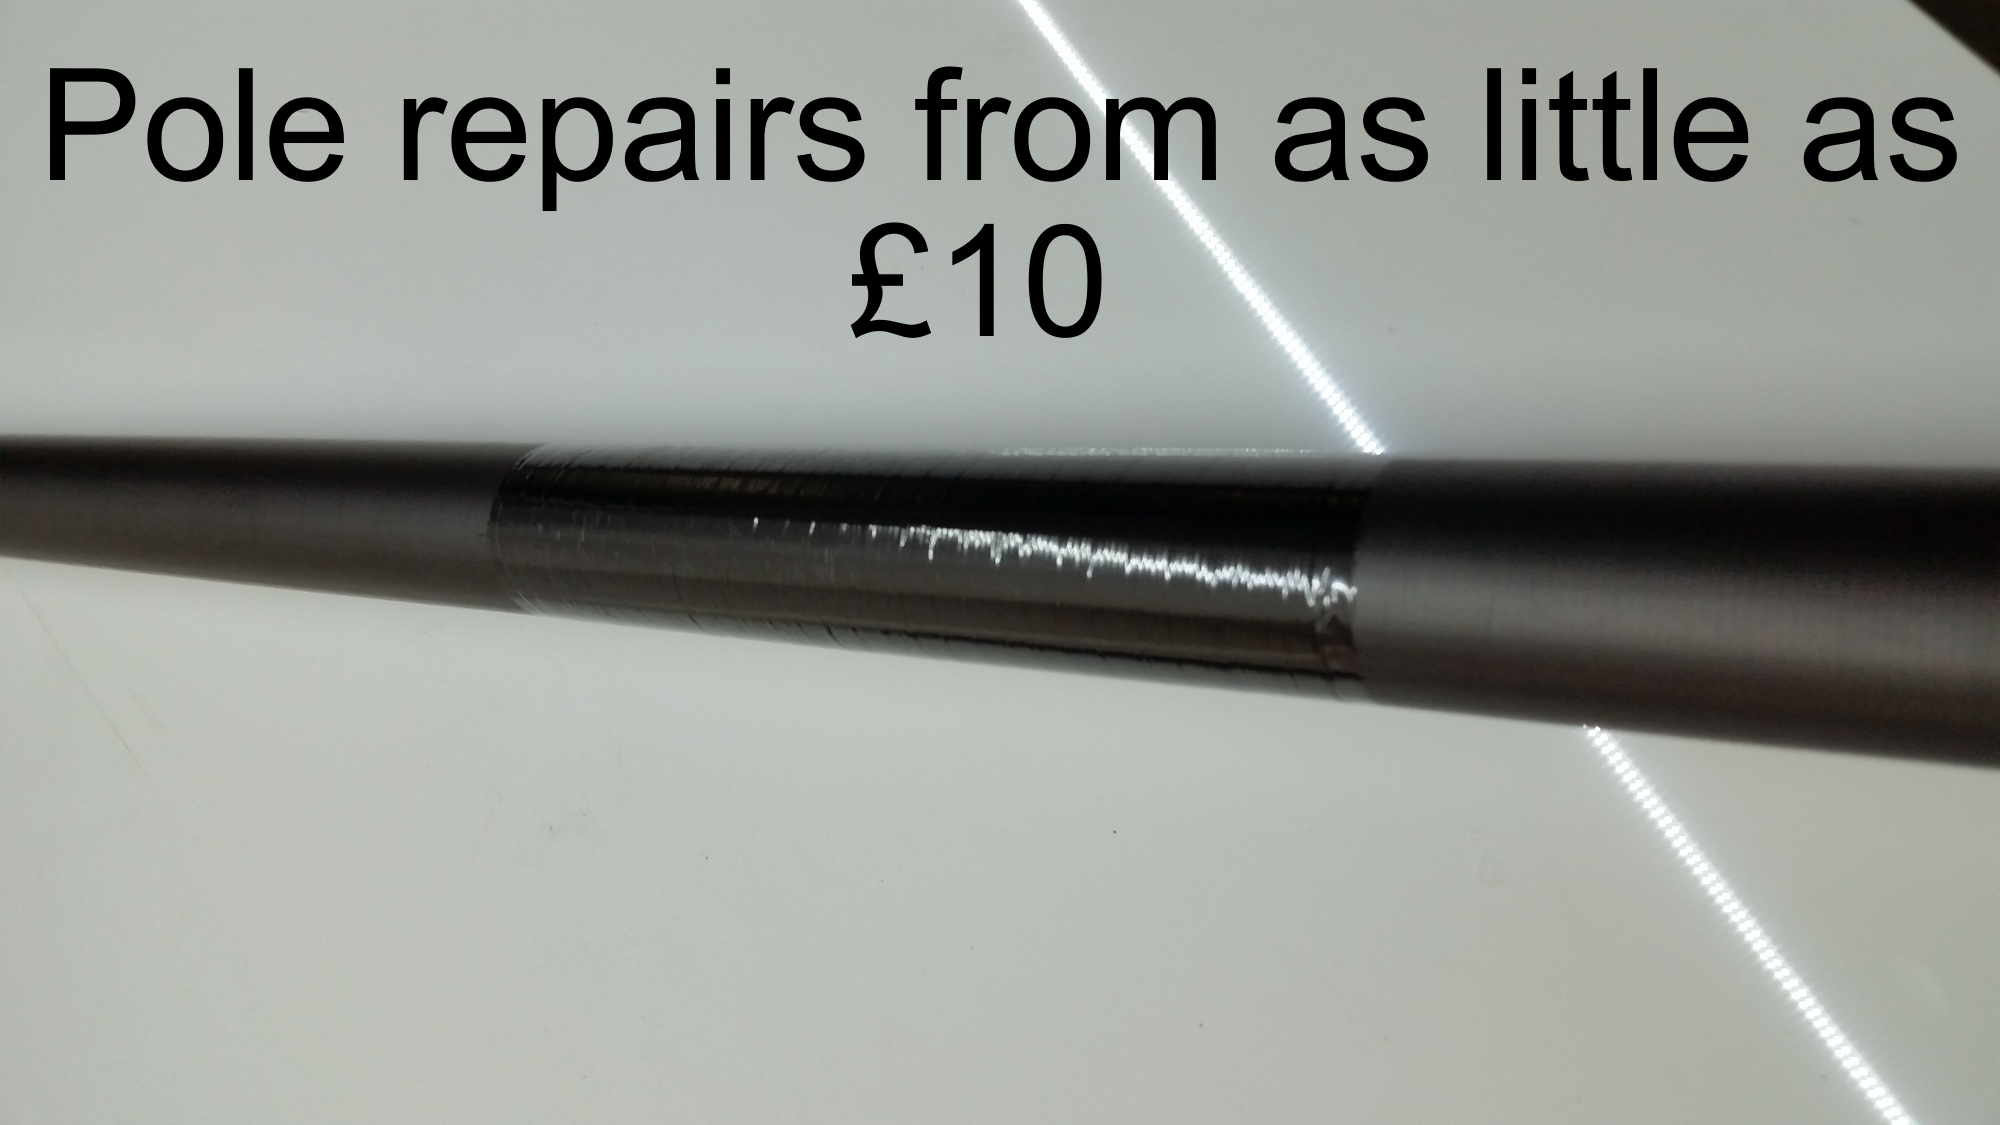 In house pole repairs from as little as £10